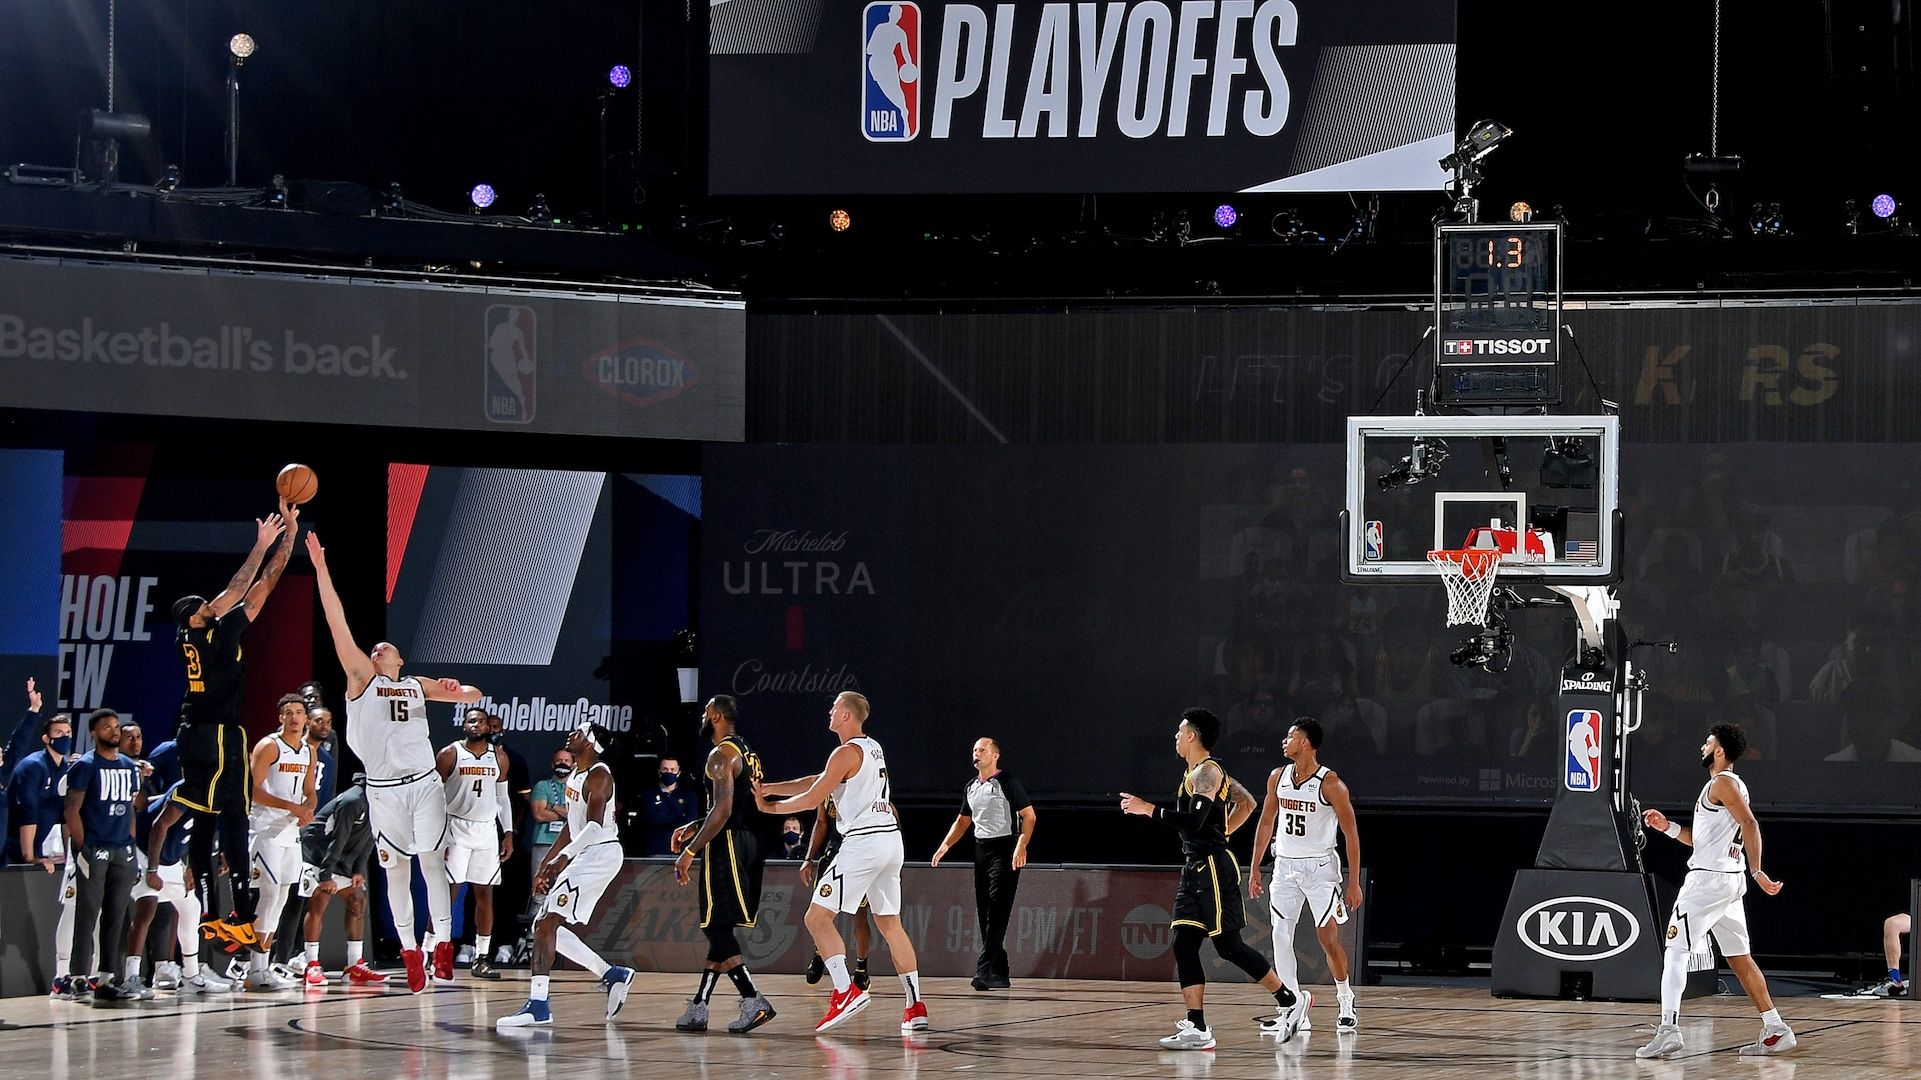 Nuggets botch final play, and what could be their best chance